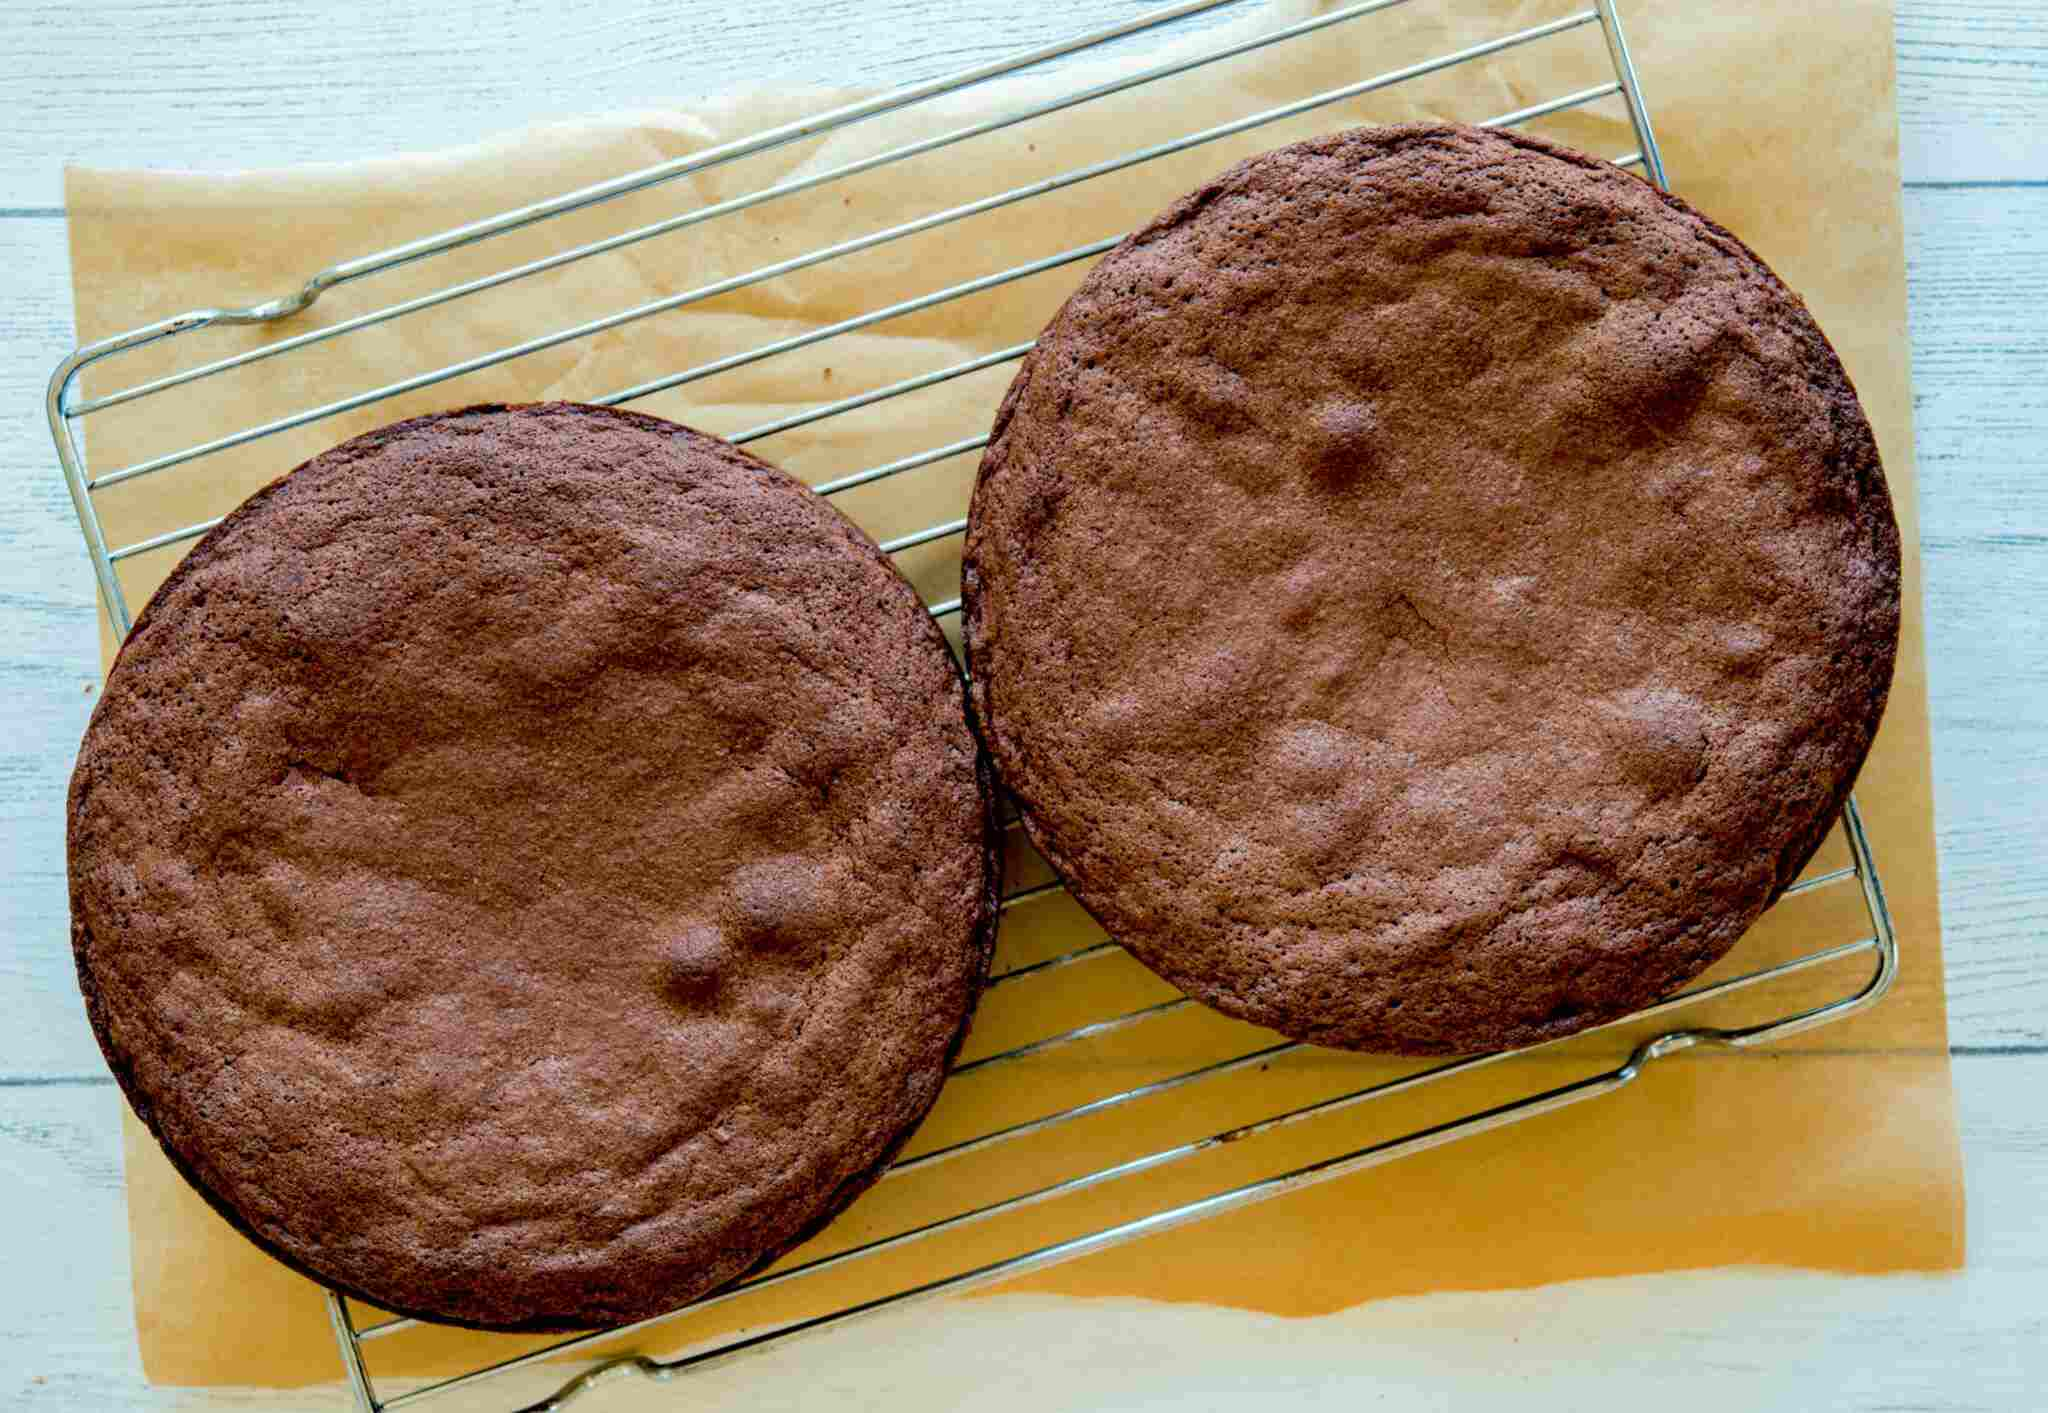 Chocolate cakes cooling on rack